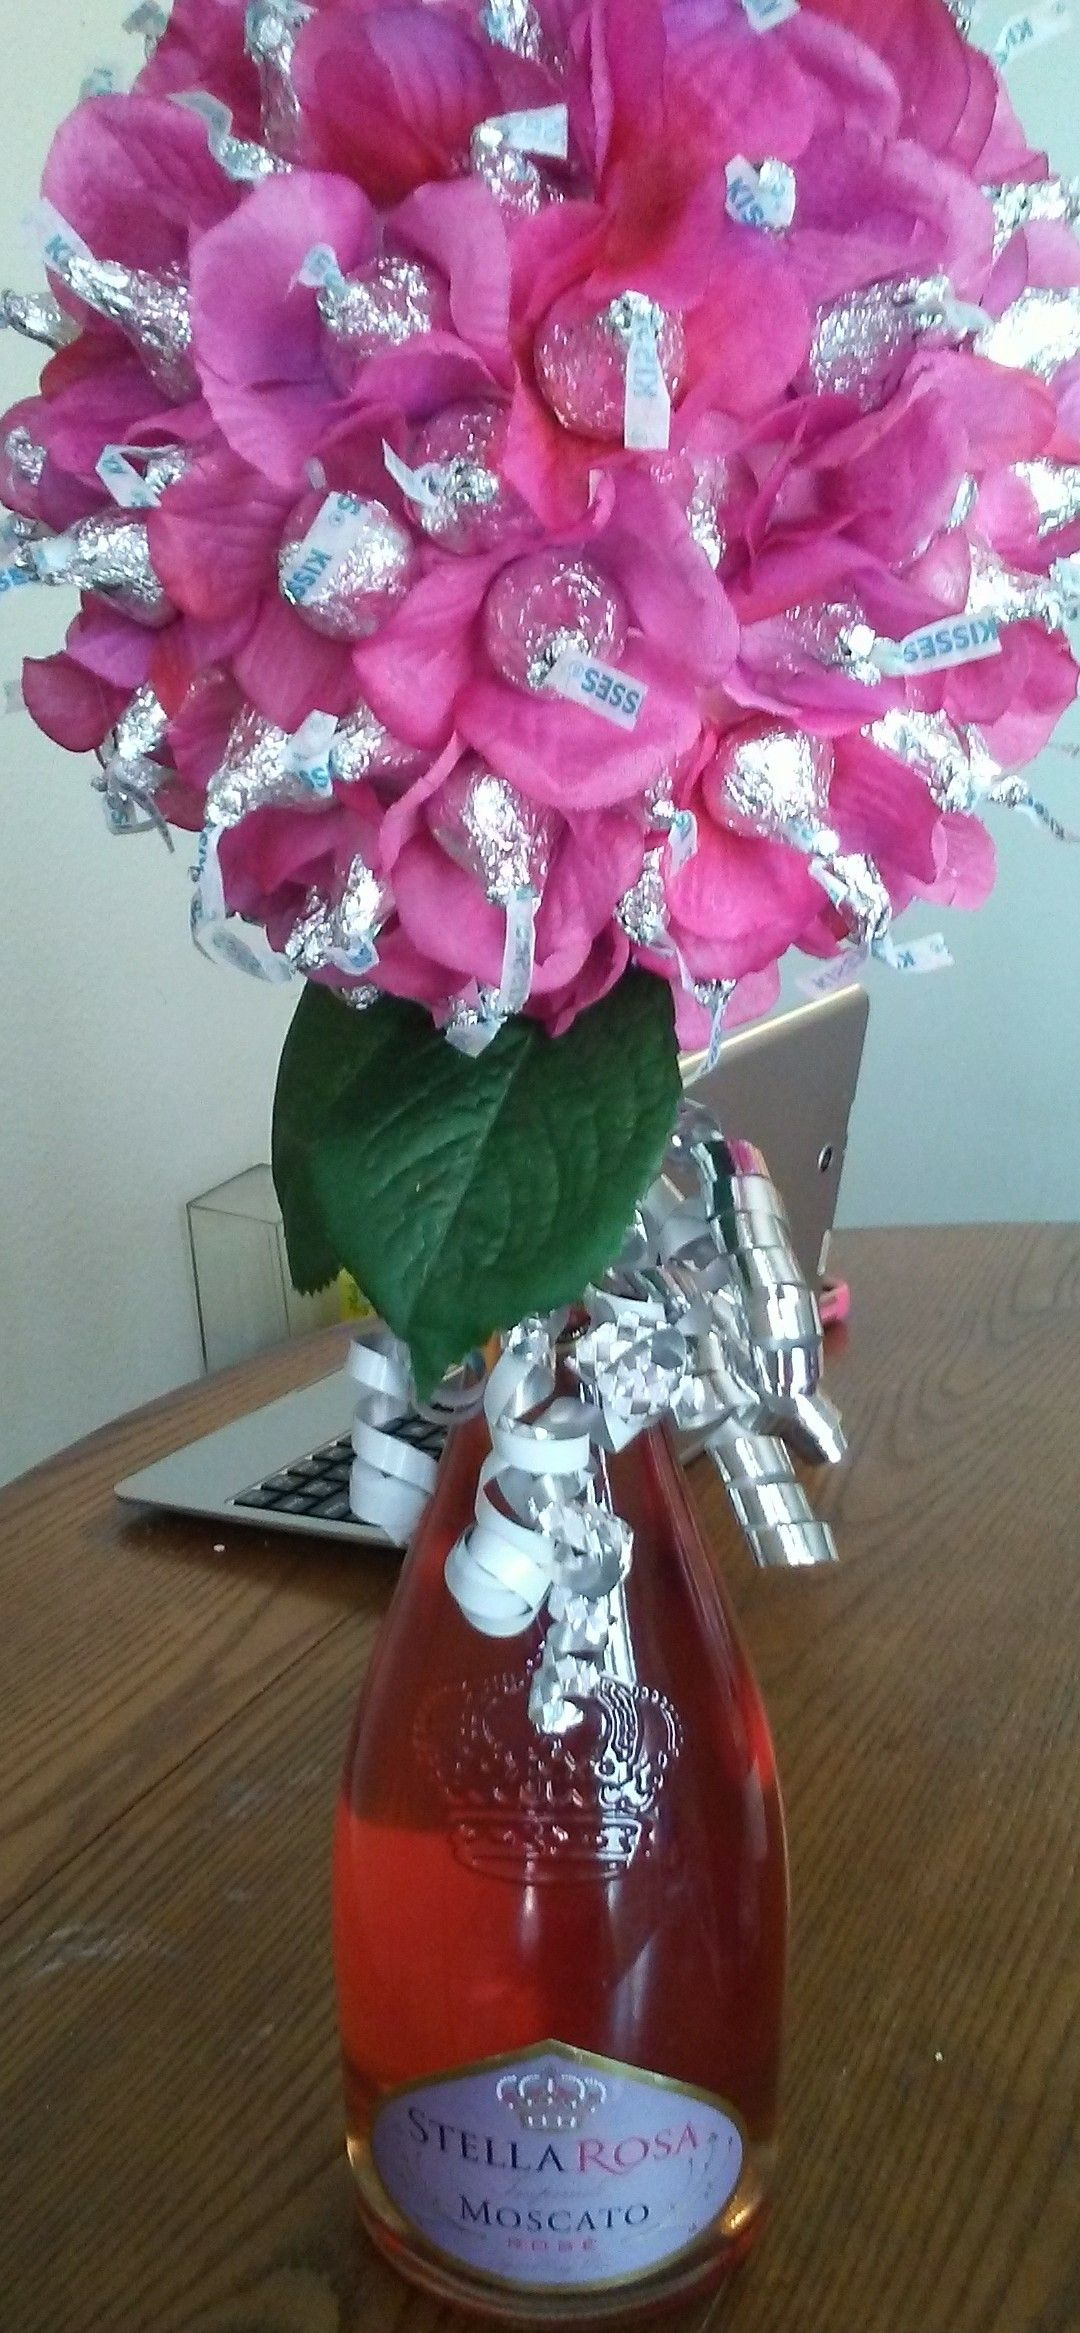 Stella Rosa hershey kiss flowers | My Creations | Pinterest | Craft